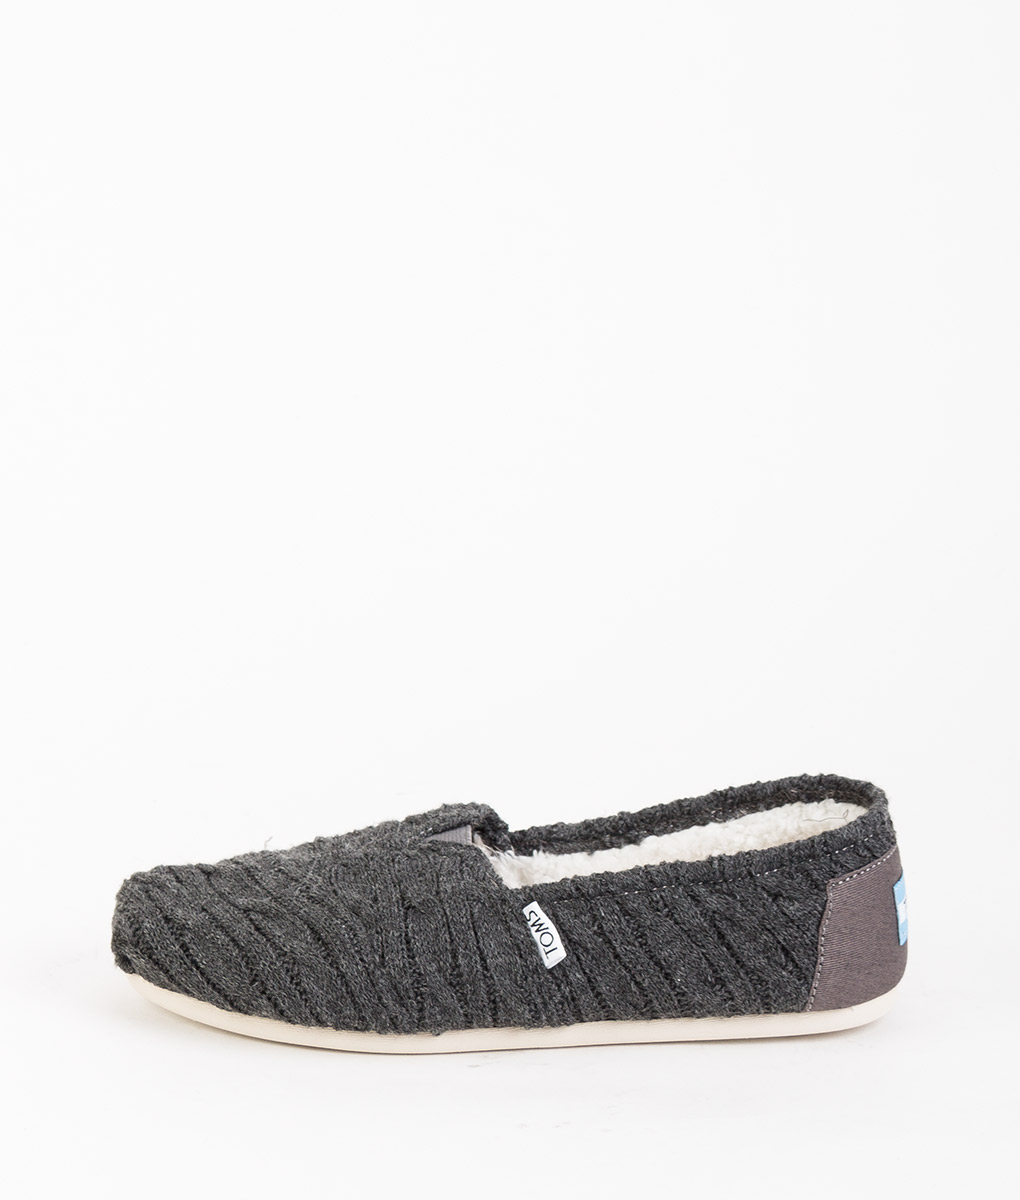 TOMS Women Espadrillas 8929 CLASSIC CABLE KNIT, Forged Iron Gray 59.99